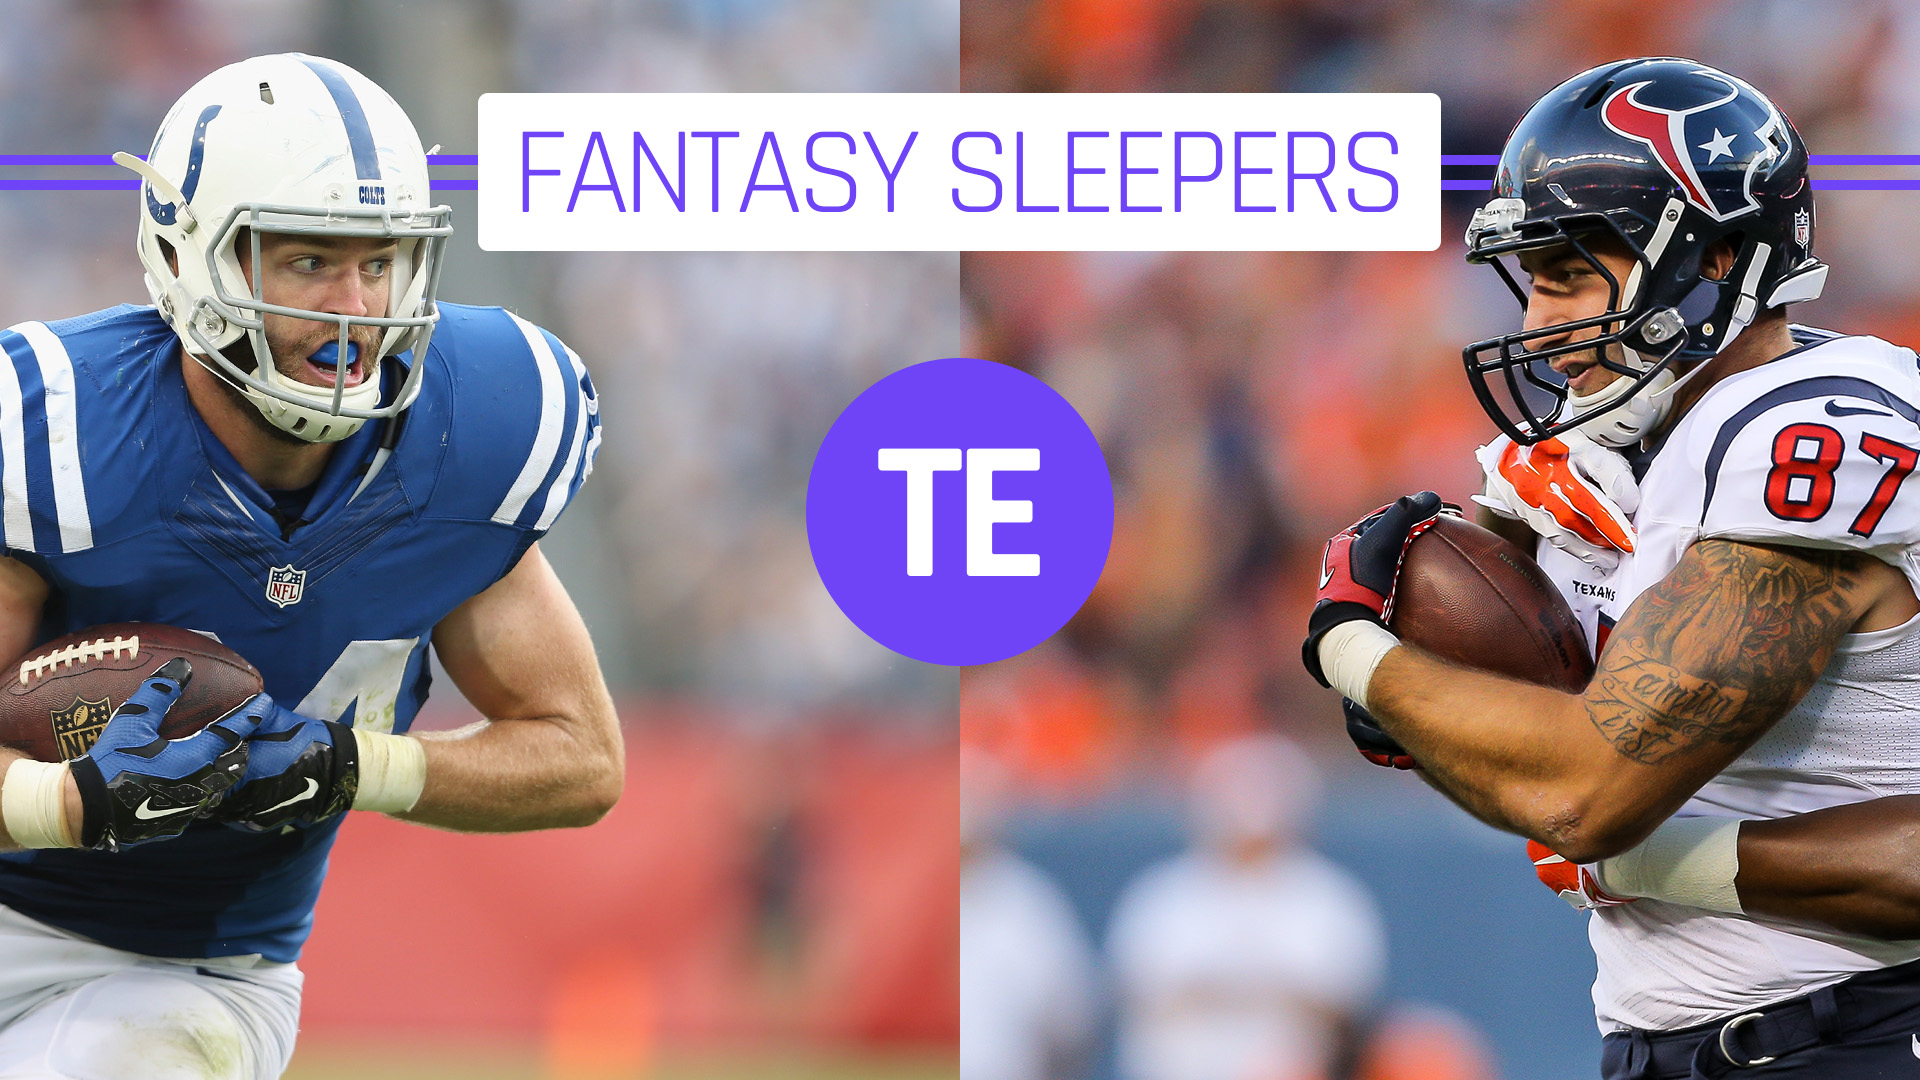 2017 Fantasy Football Sleepers Tight Ends 15 Minute News